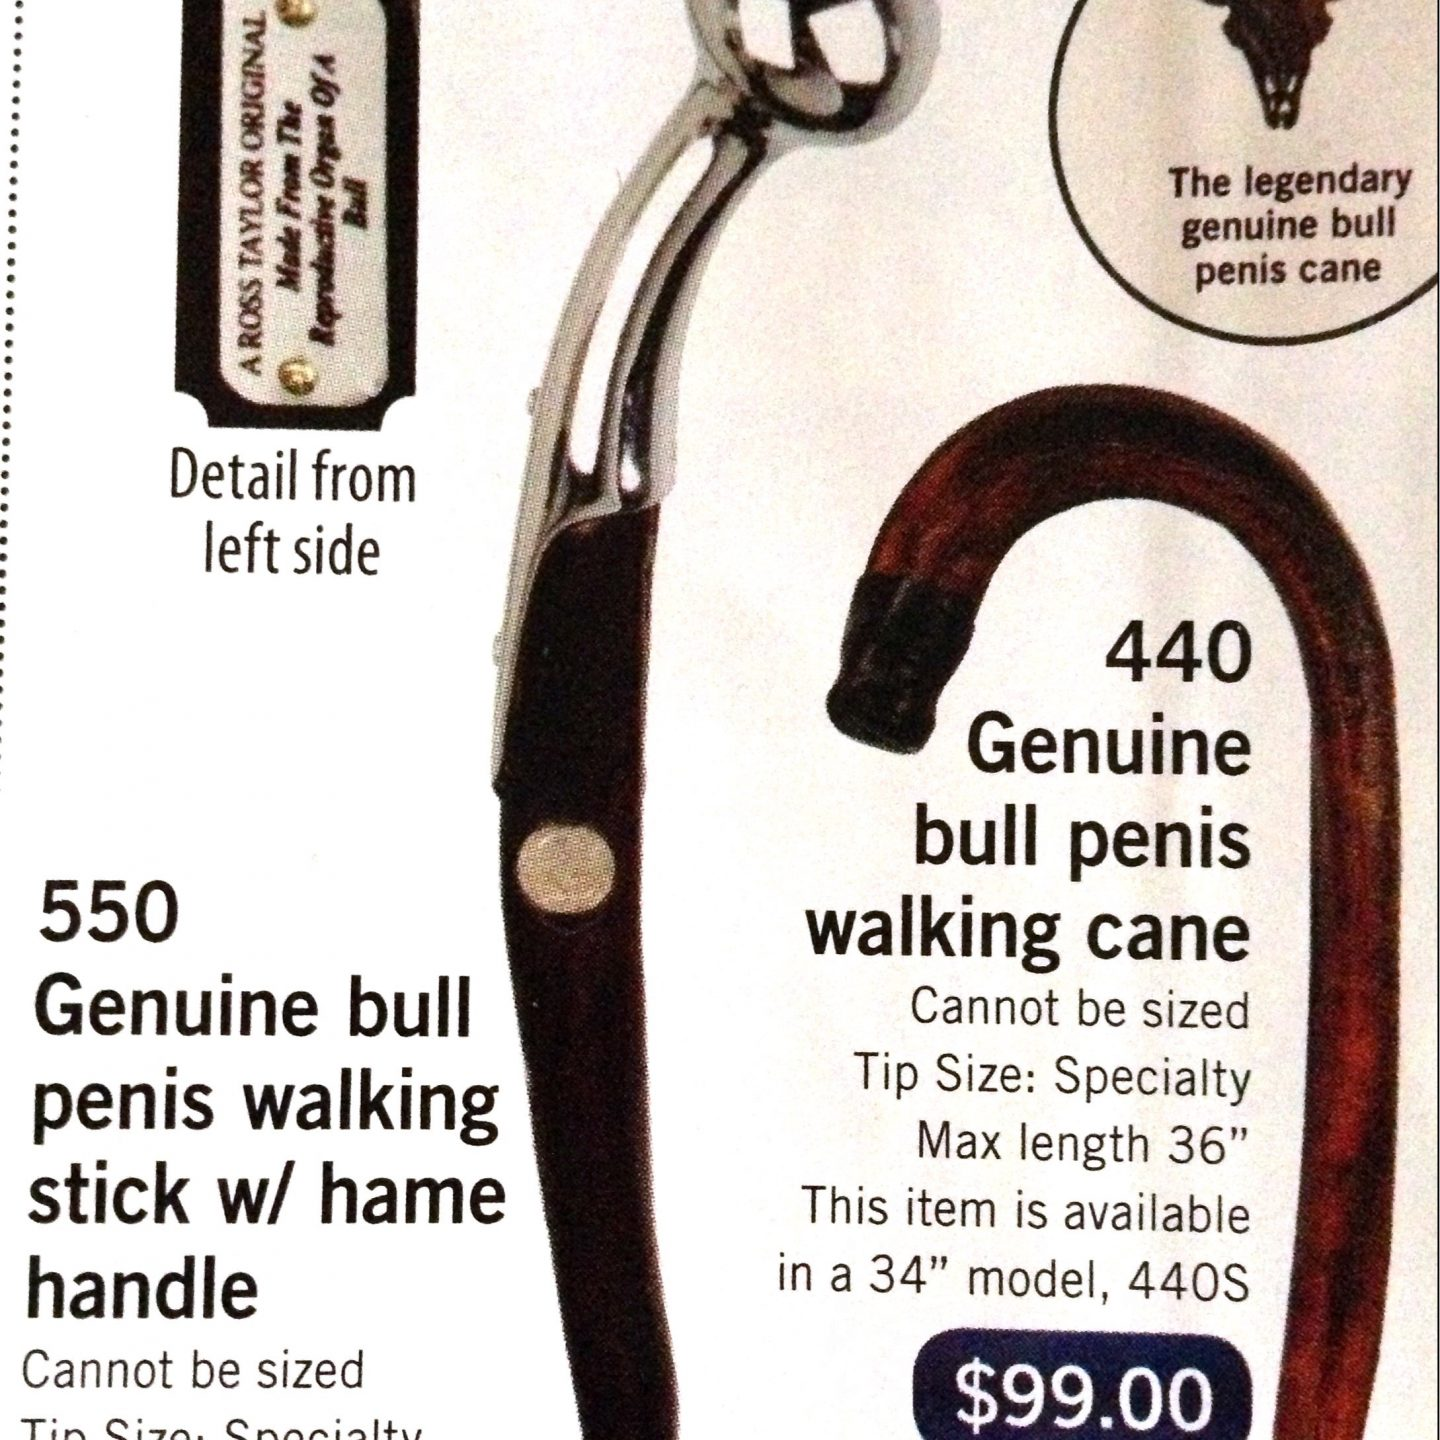 All hail penis cane! (playing favorites and musical chairs)